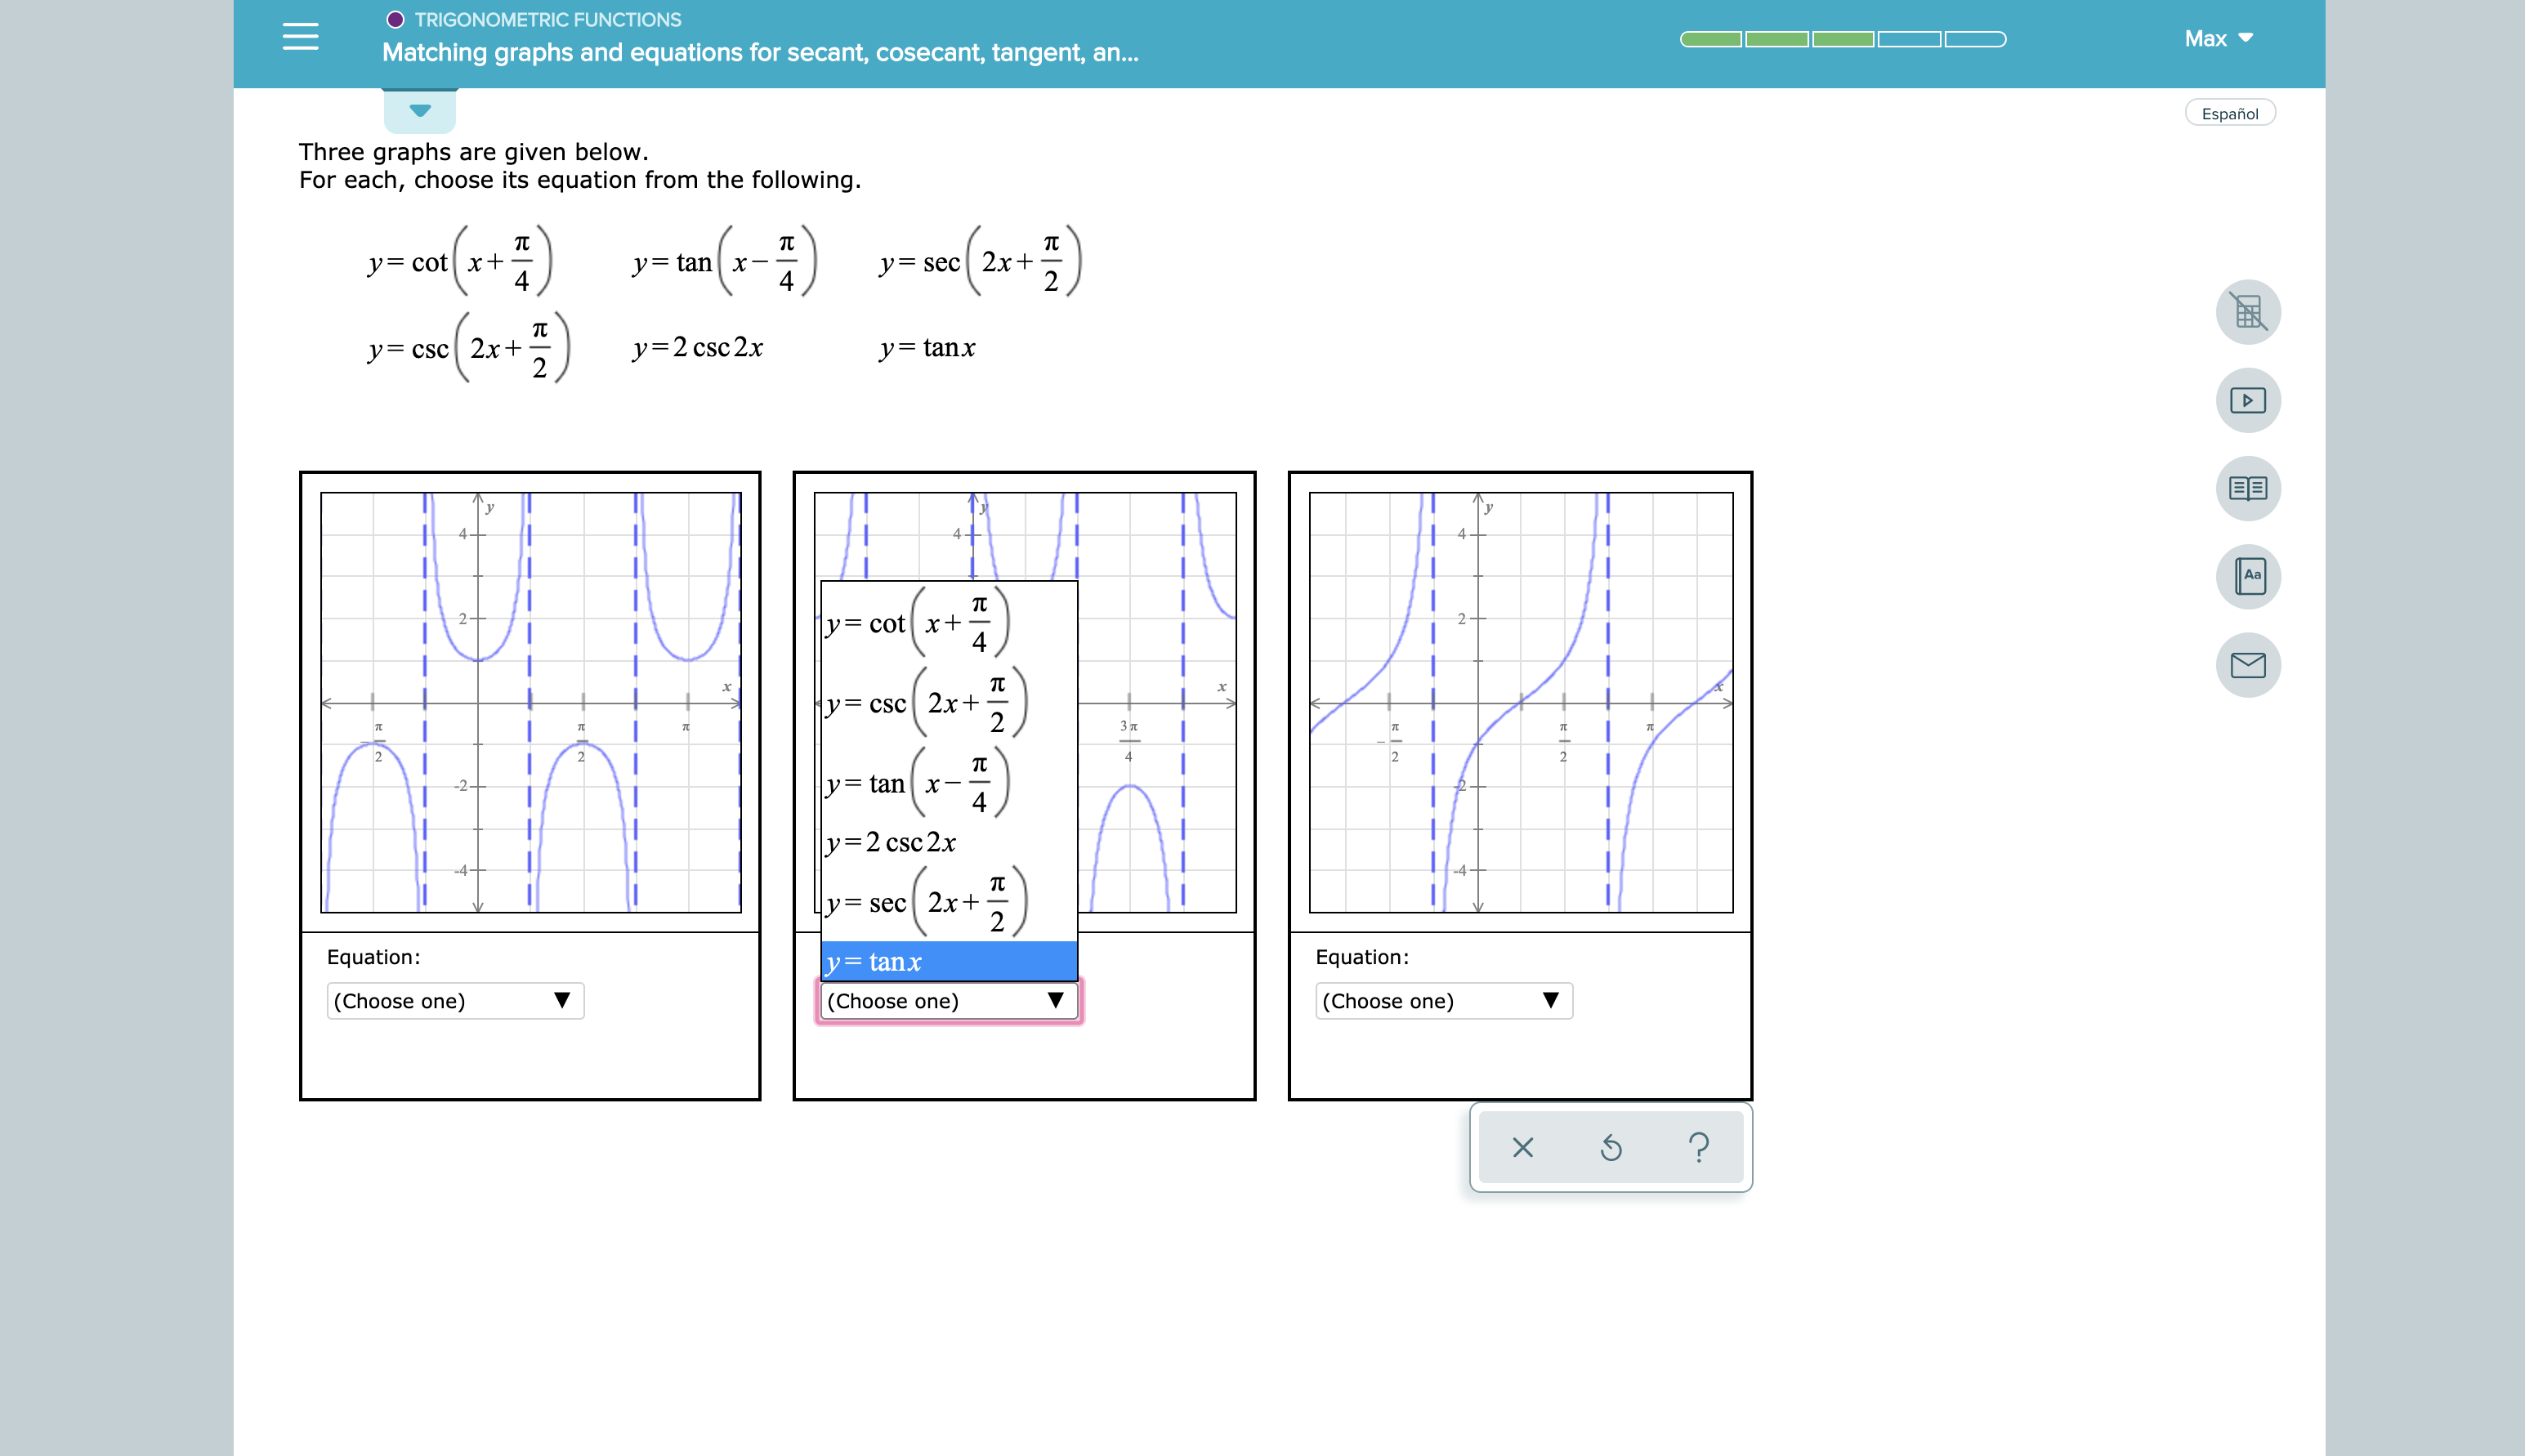 TRIGONOMETRIC FUNCTIONS Max Matching graphs and equations for secant, cosecant, tangent, a... Español Three graphs are given below. For each, choose its equation from the following. т y=cotx+ 4 y=tan x 4 у- sec  2x+ yCSc 2x+ 2 y=2 csc2x y= tanx 4- 4 4 Aa y= cotx+ 4 2 y= csc 2x+ 2 3л 2 2 4 2 2 TC y= tanx 4 -2+ y=2 csc2x -4- -4 т = sec 2x+ 2 Equation: Equation: y=tanx (Choose one) (Choose one) (Choose one) ?